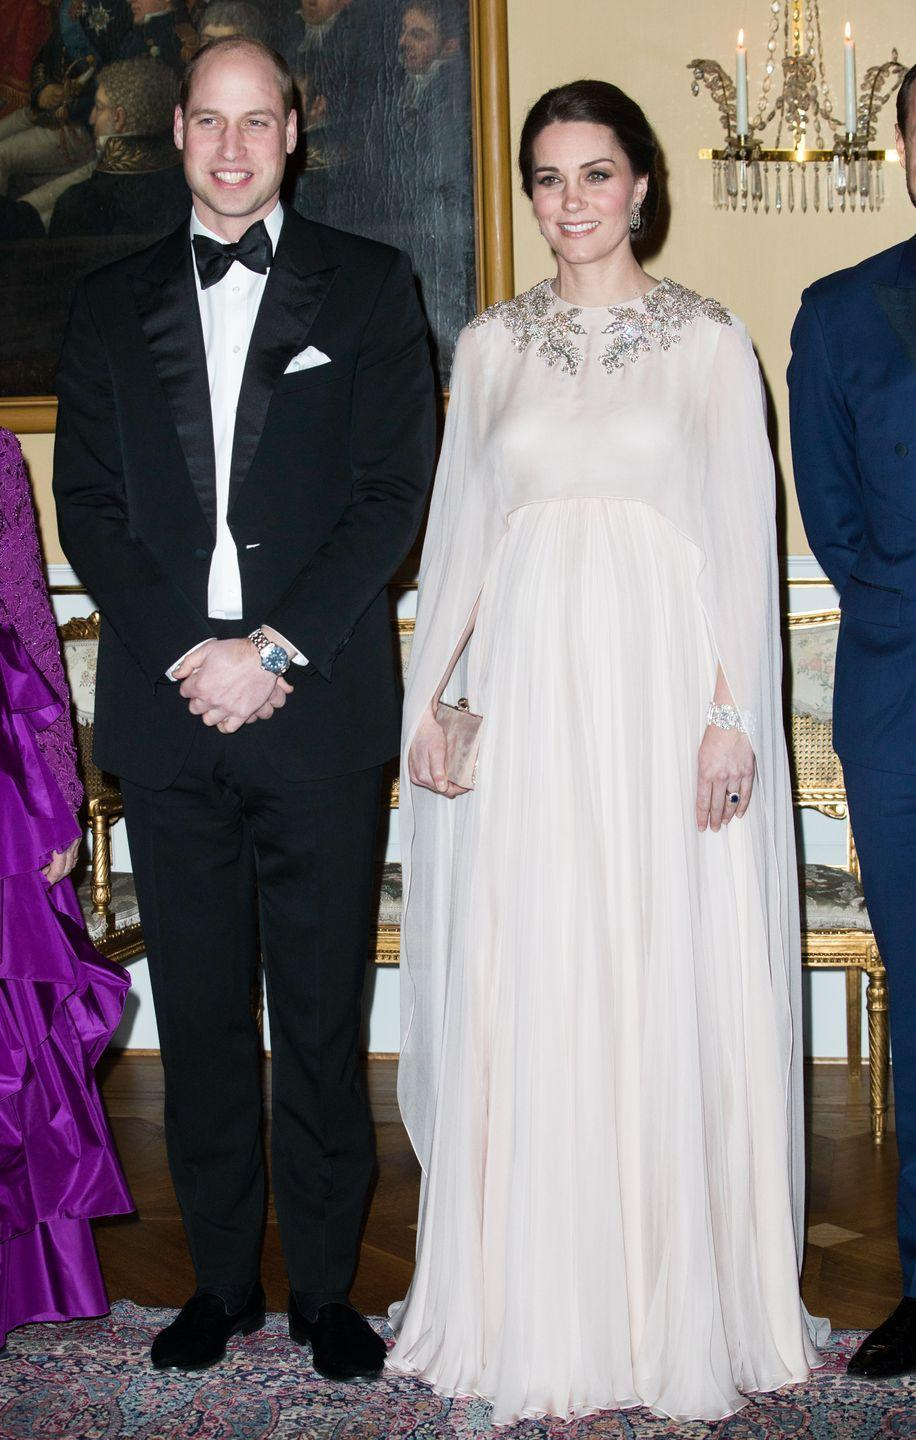 """<p>During a <a href=""""https://www.townandcountrymag.com/society/tradition/g15917756/photos-kate-middleton-royal-tour-sweden-norway-2018/"""" rel=""""nofollow noopener"""" target=""""_blank"""" data-ylk=""""slk:2018 visit to Oslo, Norway"""" class=""""link rapid-noclick-resp"""">2018 visit to Oslo, Norway</a>, Kate glowed in this cream cape dress. She wore the Grecian-inspired Alexander McQueen gown to dinner at Norway's Royal Palace. The duchess chose an updo to further show off the dress's intricate neckline detailing. <br></p>"""